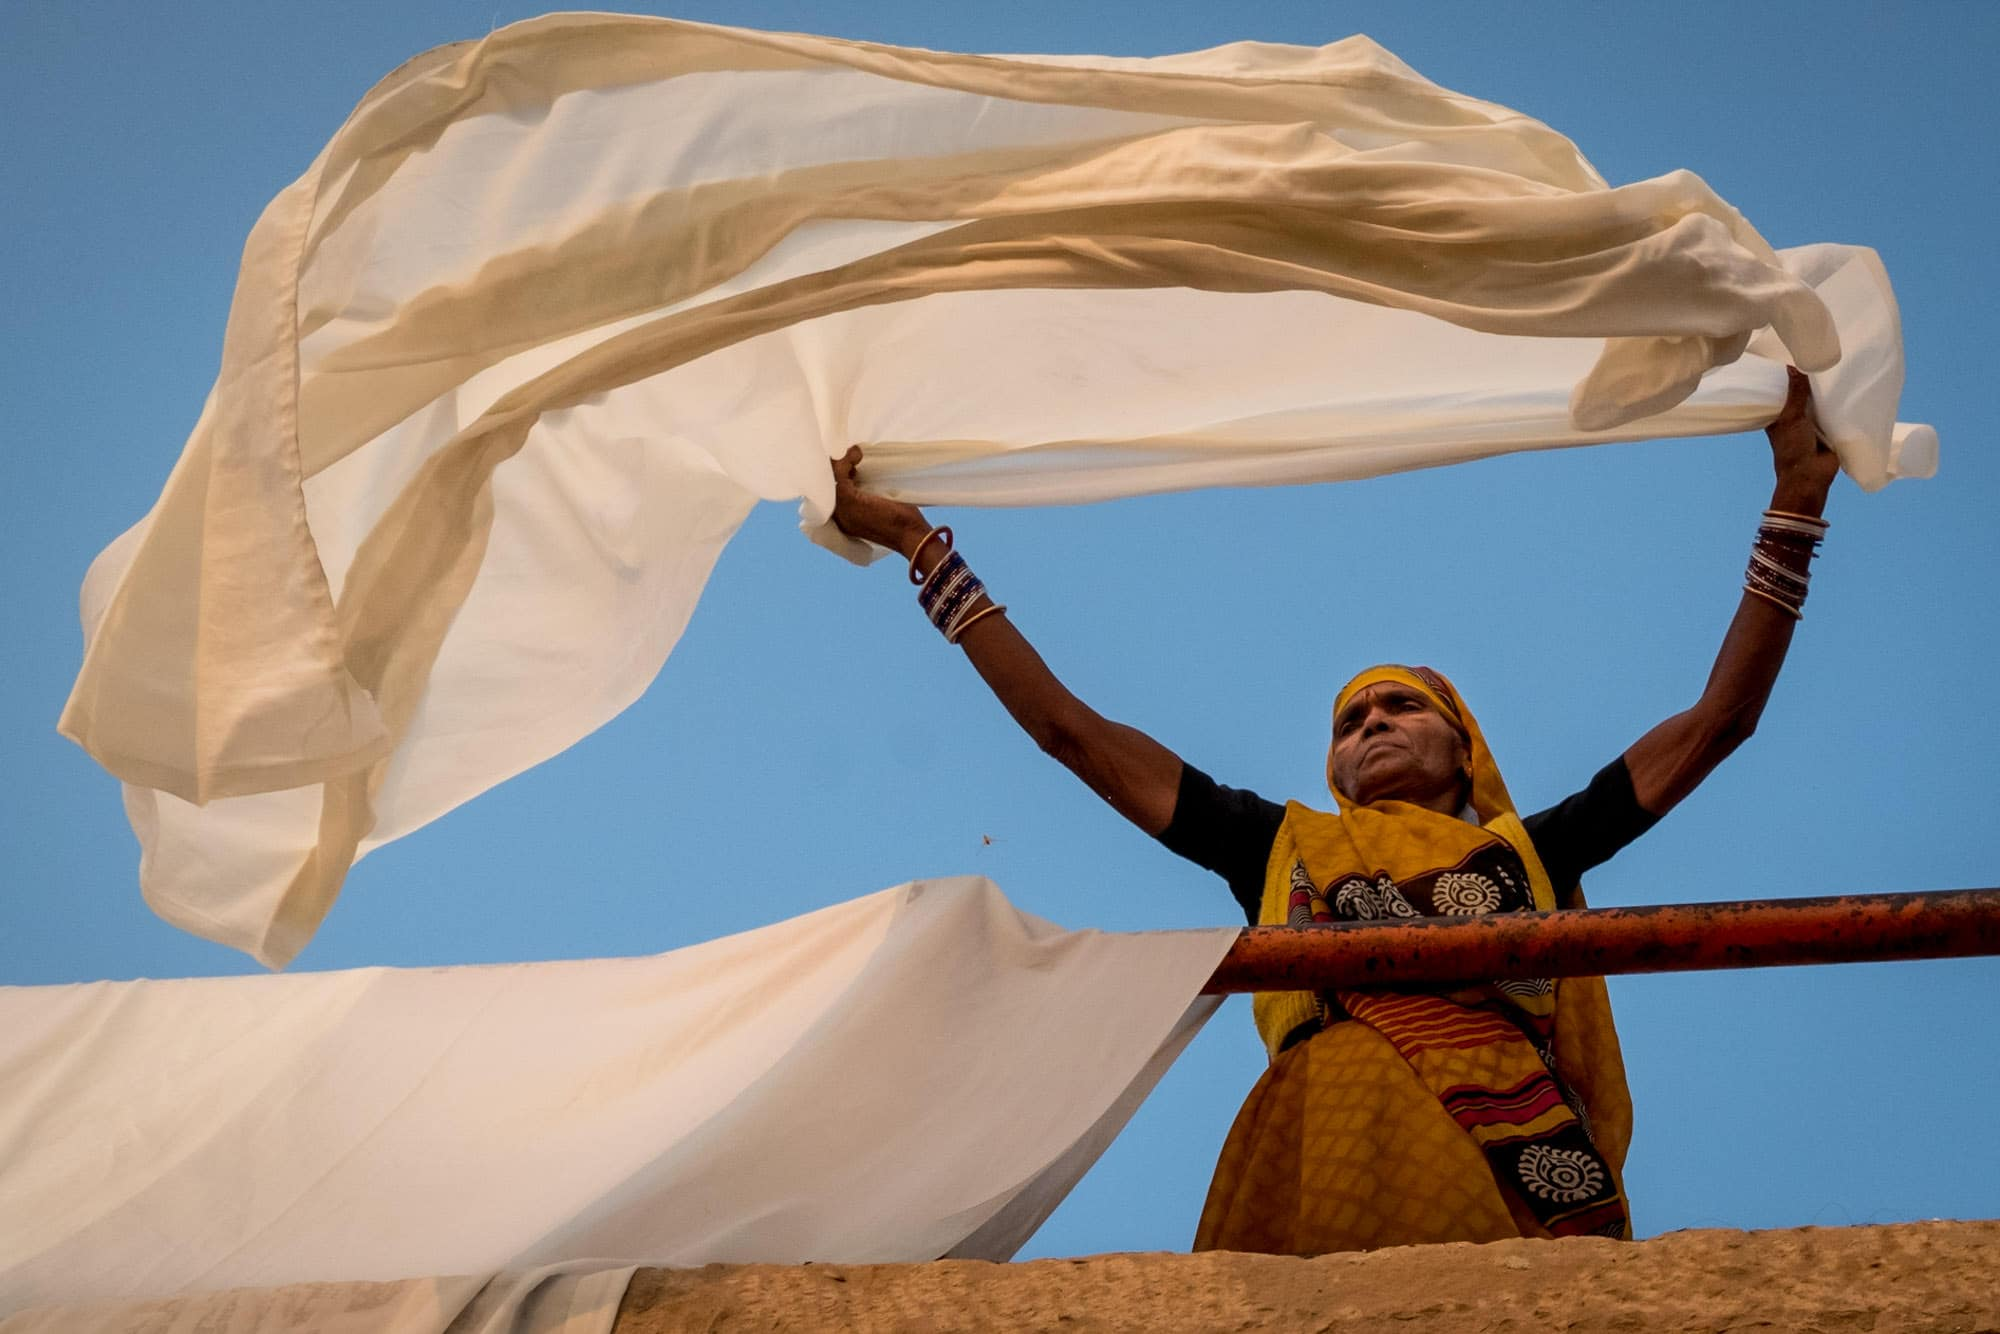 An Indian women trying sheets at sunrise in Varanasi